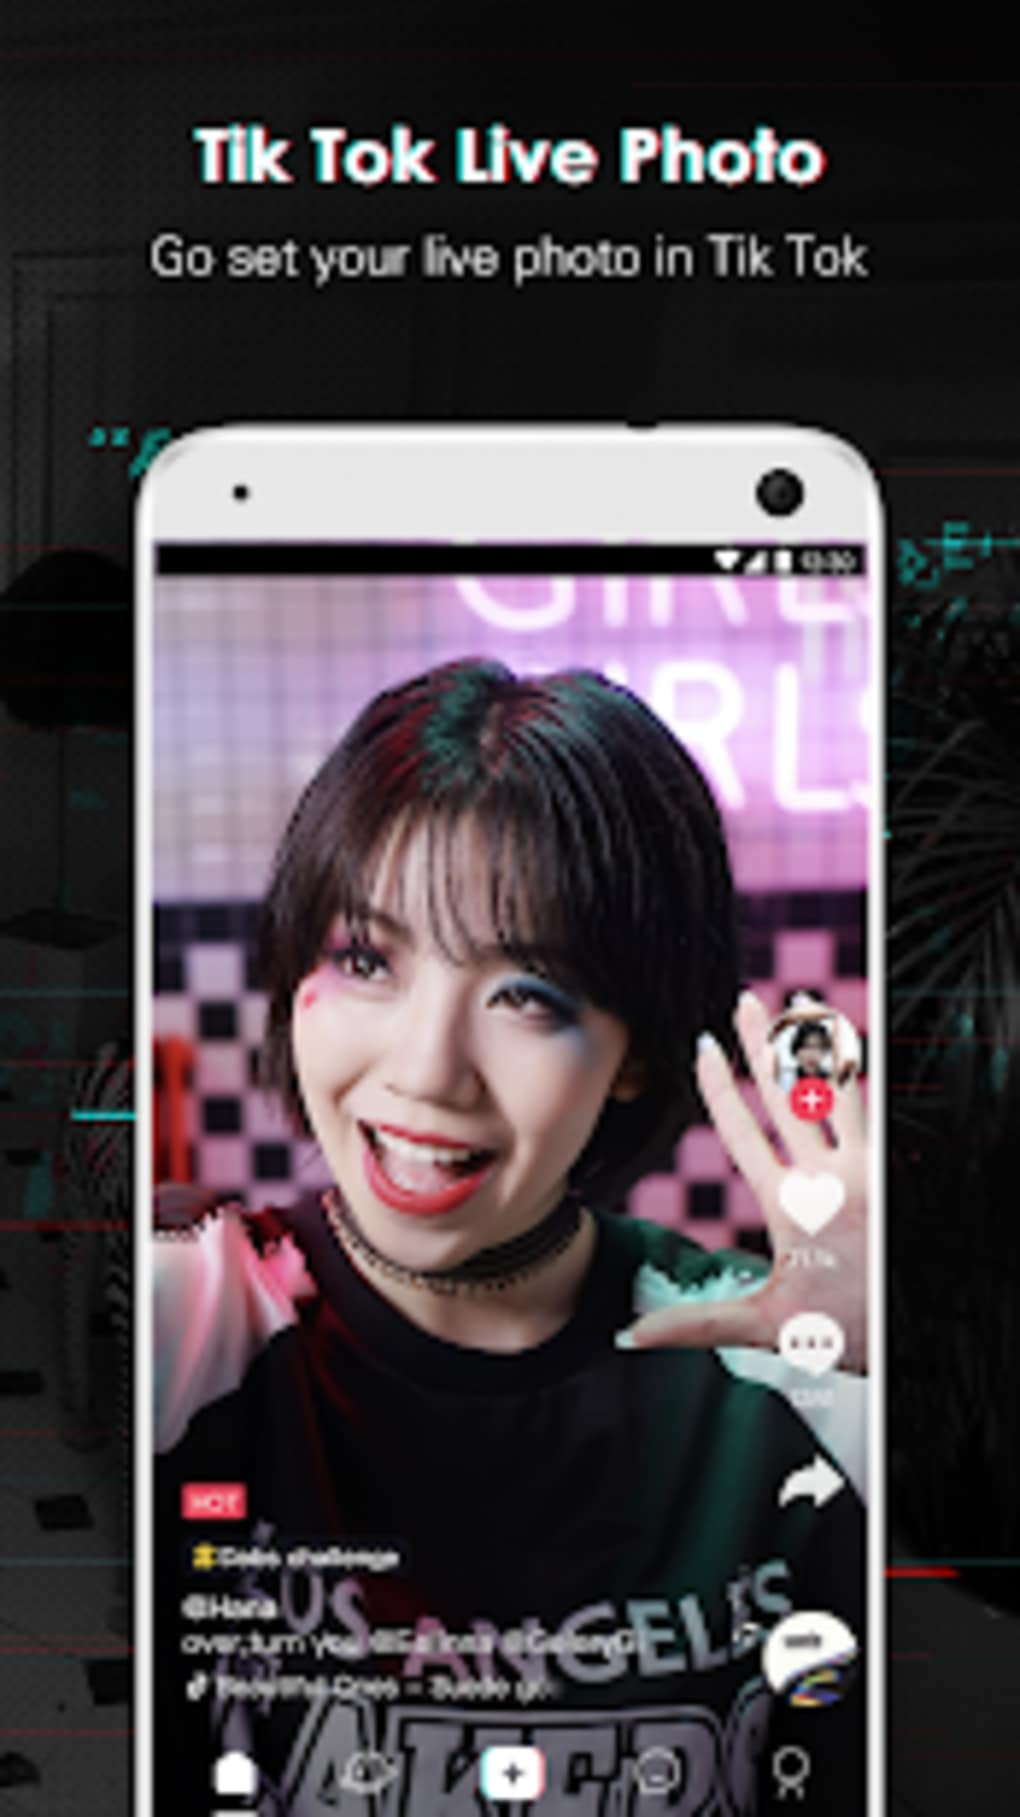 Tik Tok Wall Picture APK for Android - Download